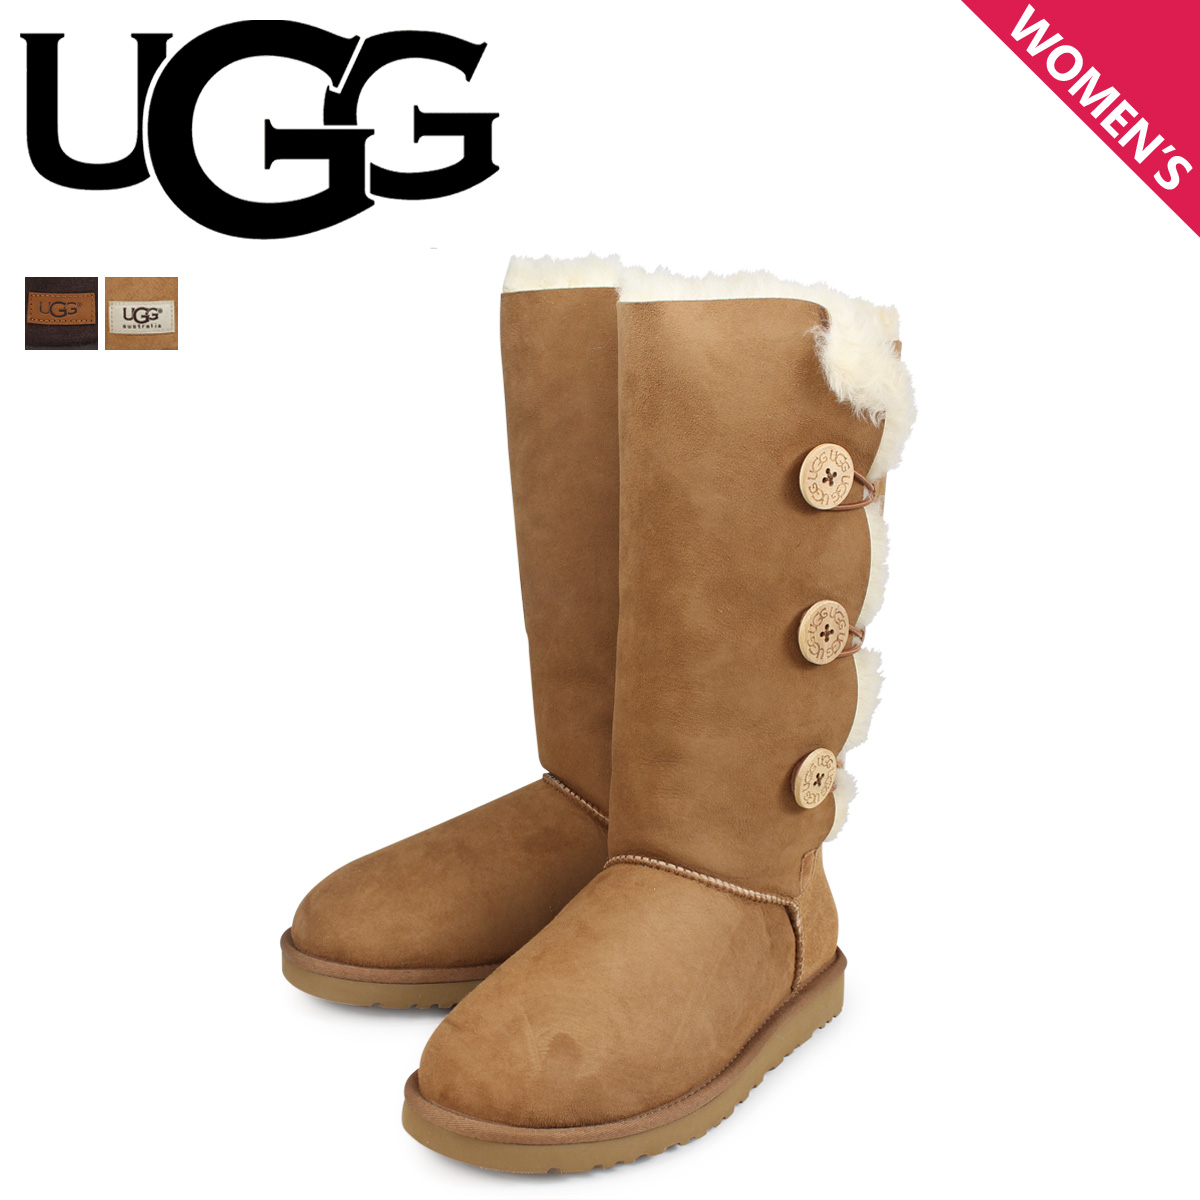 9dda5b3cafb Sugar Online Shop: 1873 アグ UGG boots mouton boots Bailey button ...